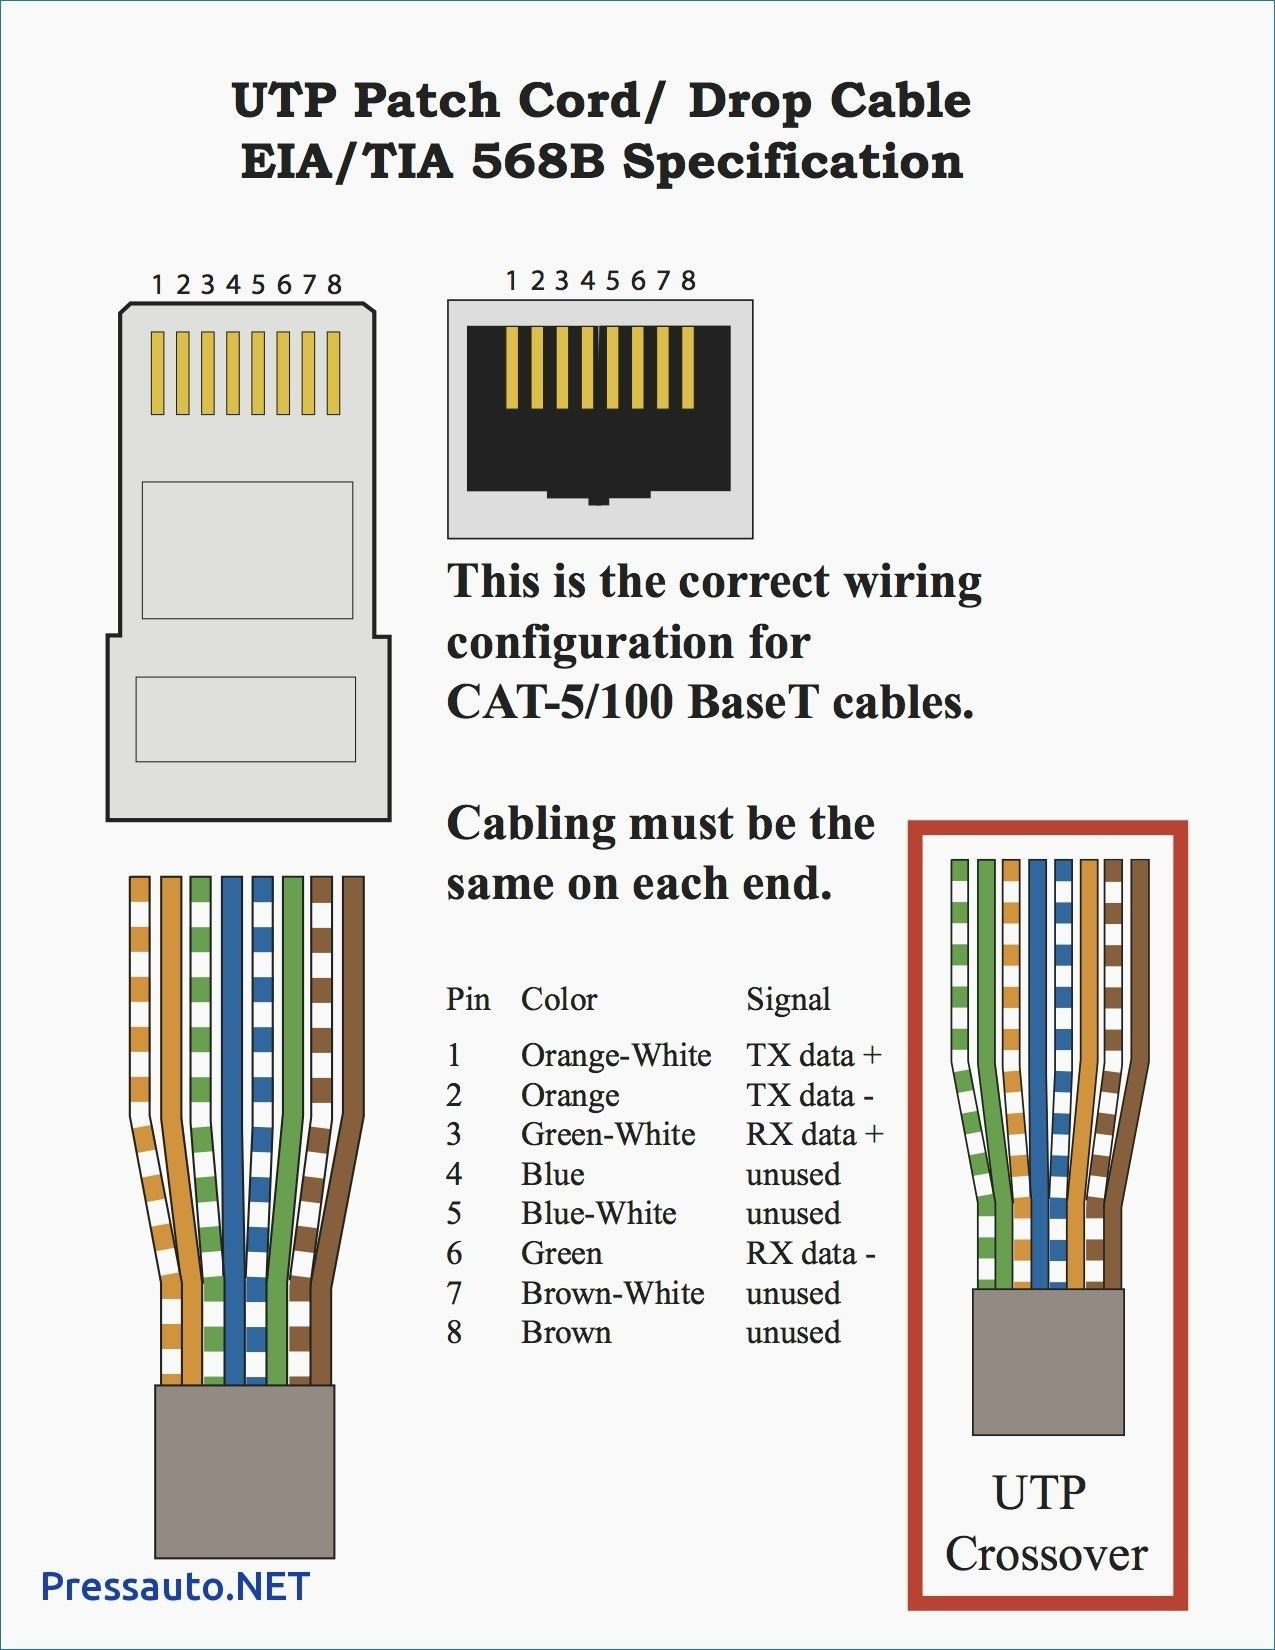 Cat6 Diagram : diagram, Diagram, #diagramsample, #diagramformat, Diagram,, Wire,, Cable